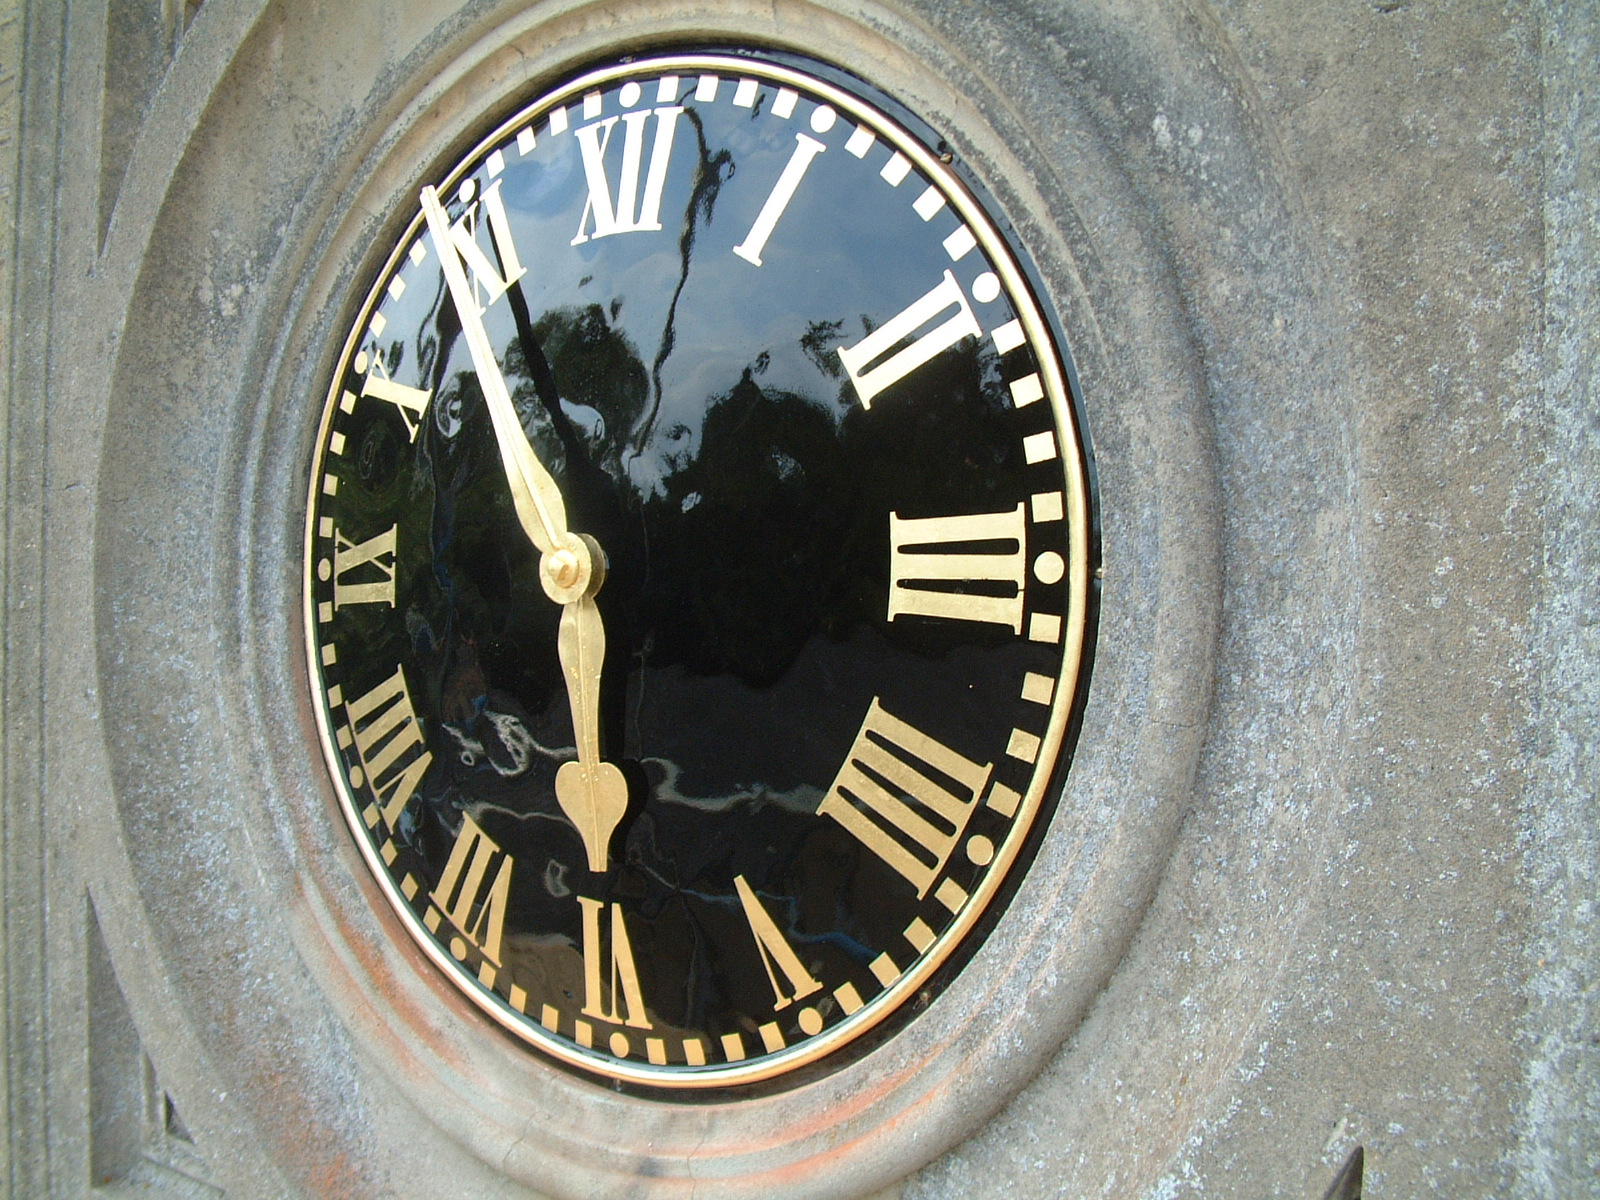 Black and gold exterior clock